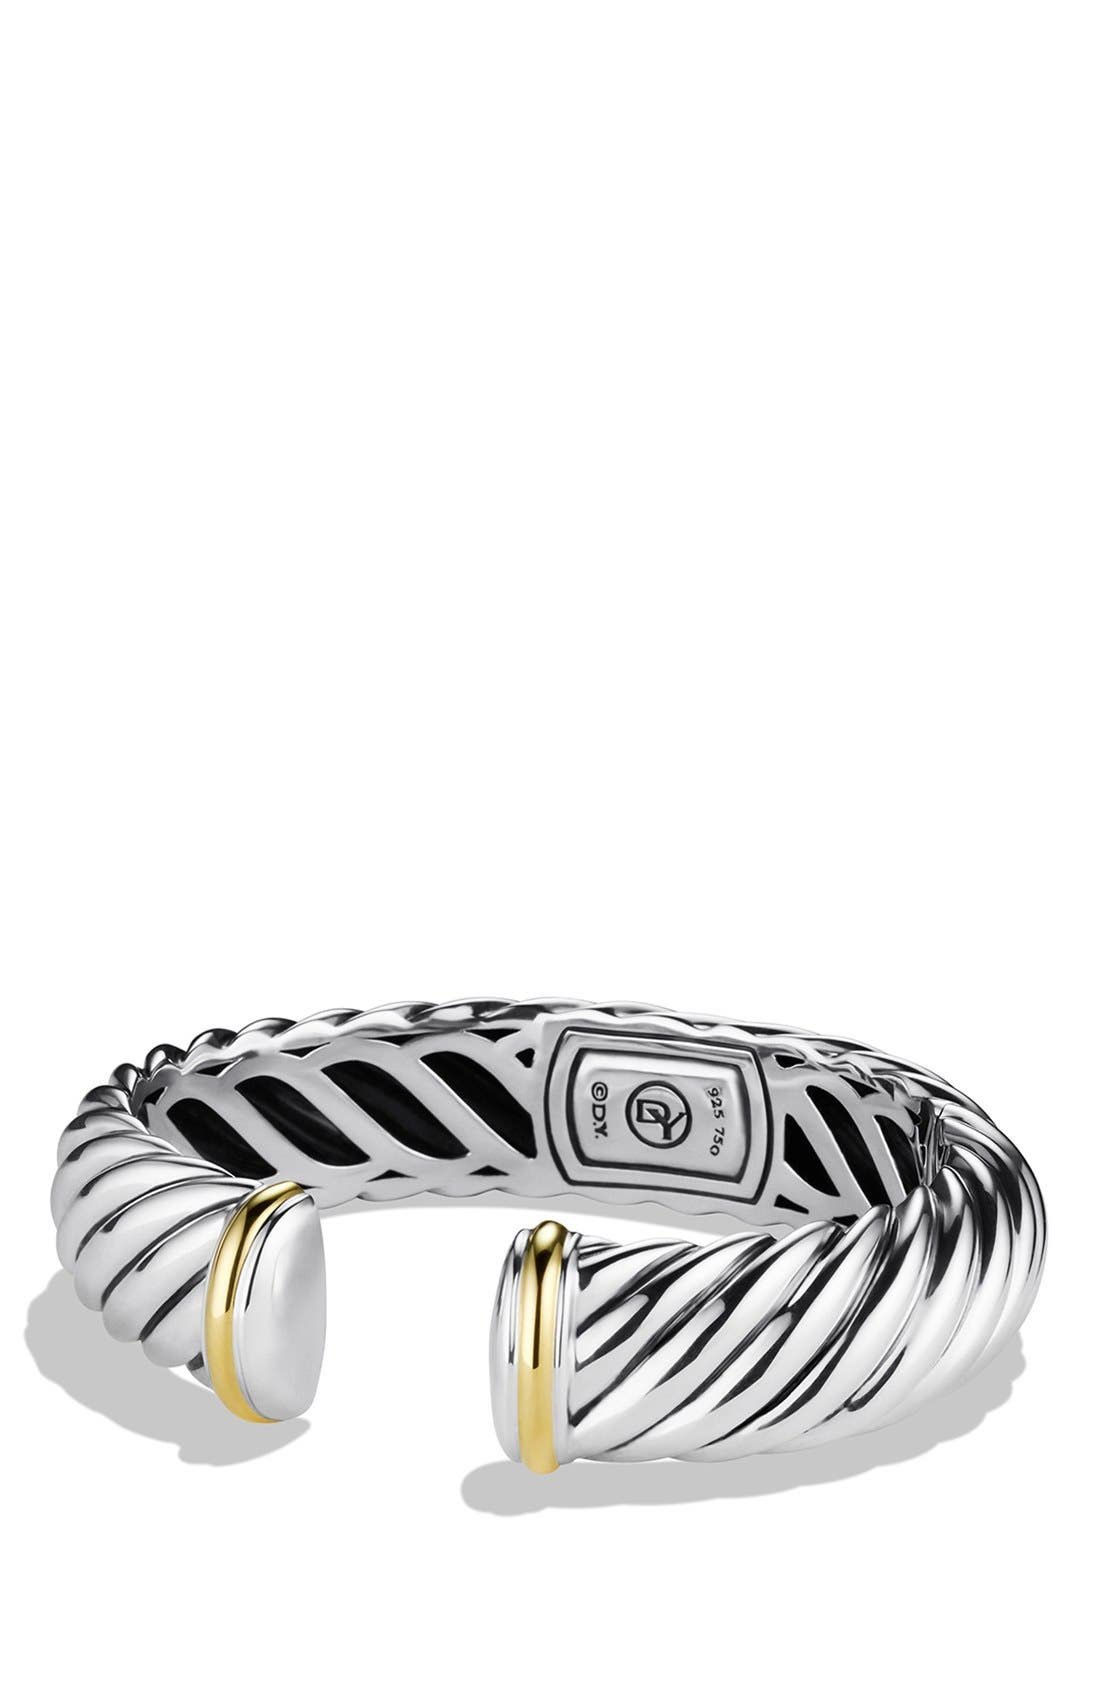 Alternate Image 1 Selected - David Yurman 'Waverly' Bracelet with Gold